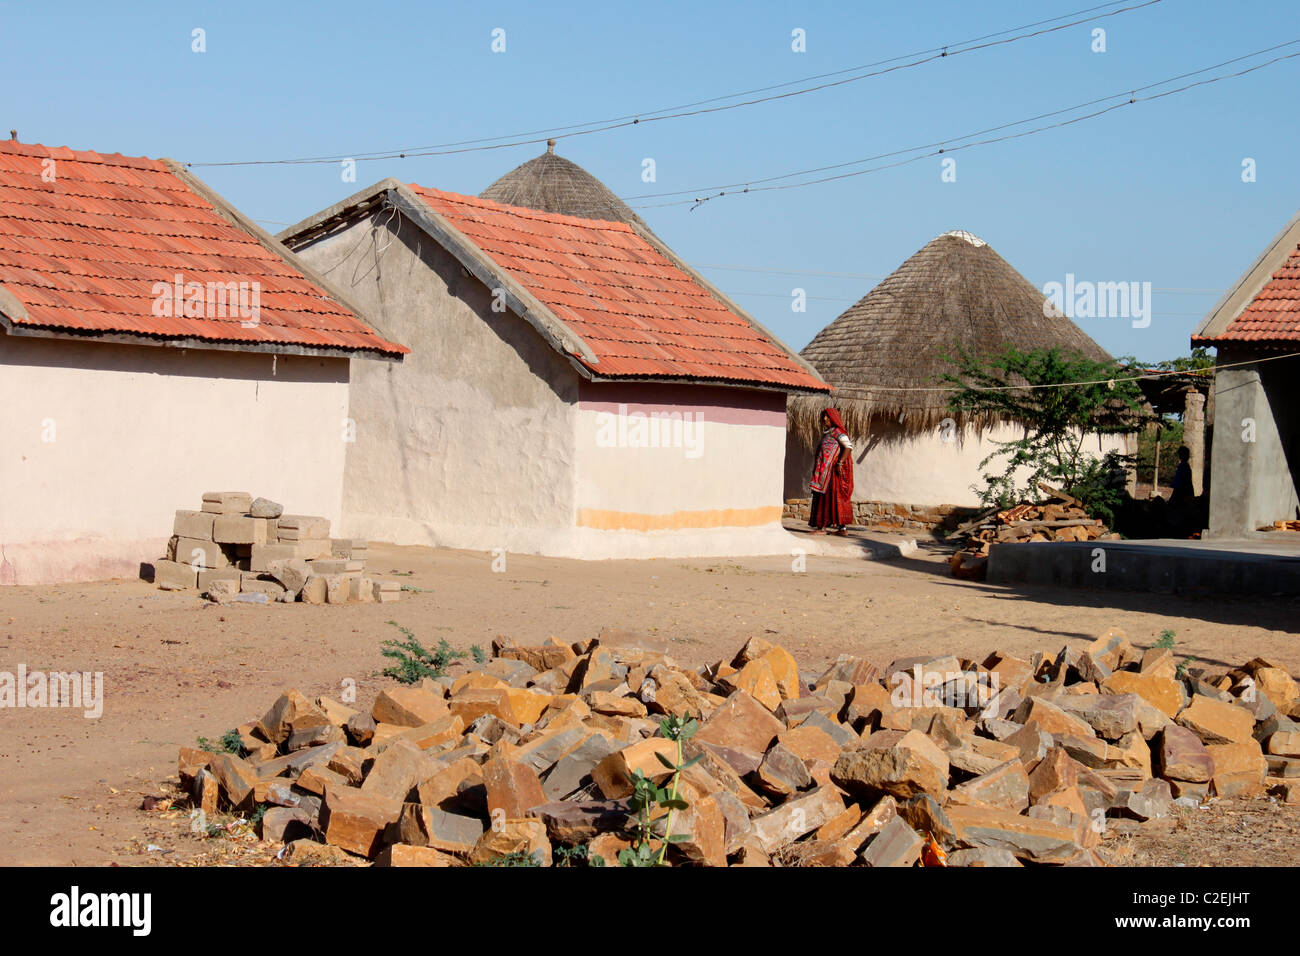 A view of village huts in Gujarat, India - Stock Image